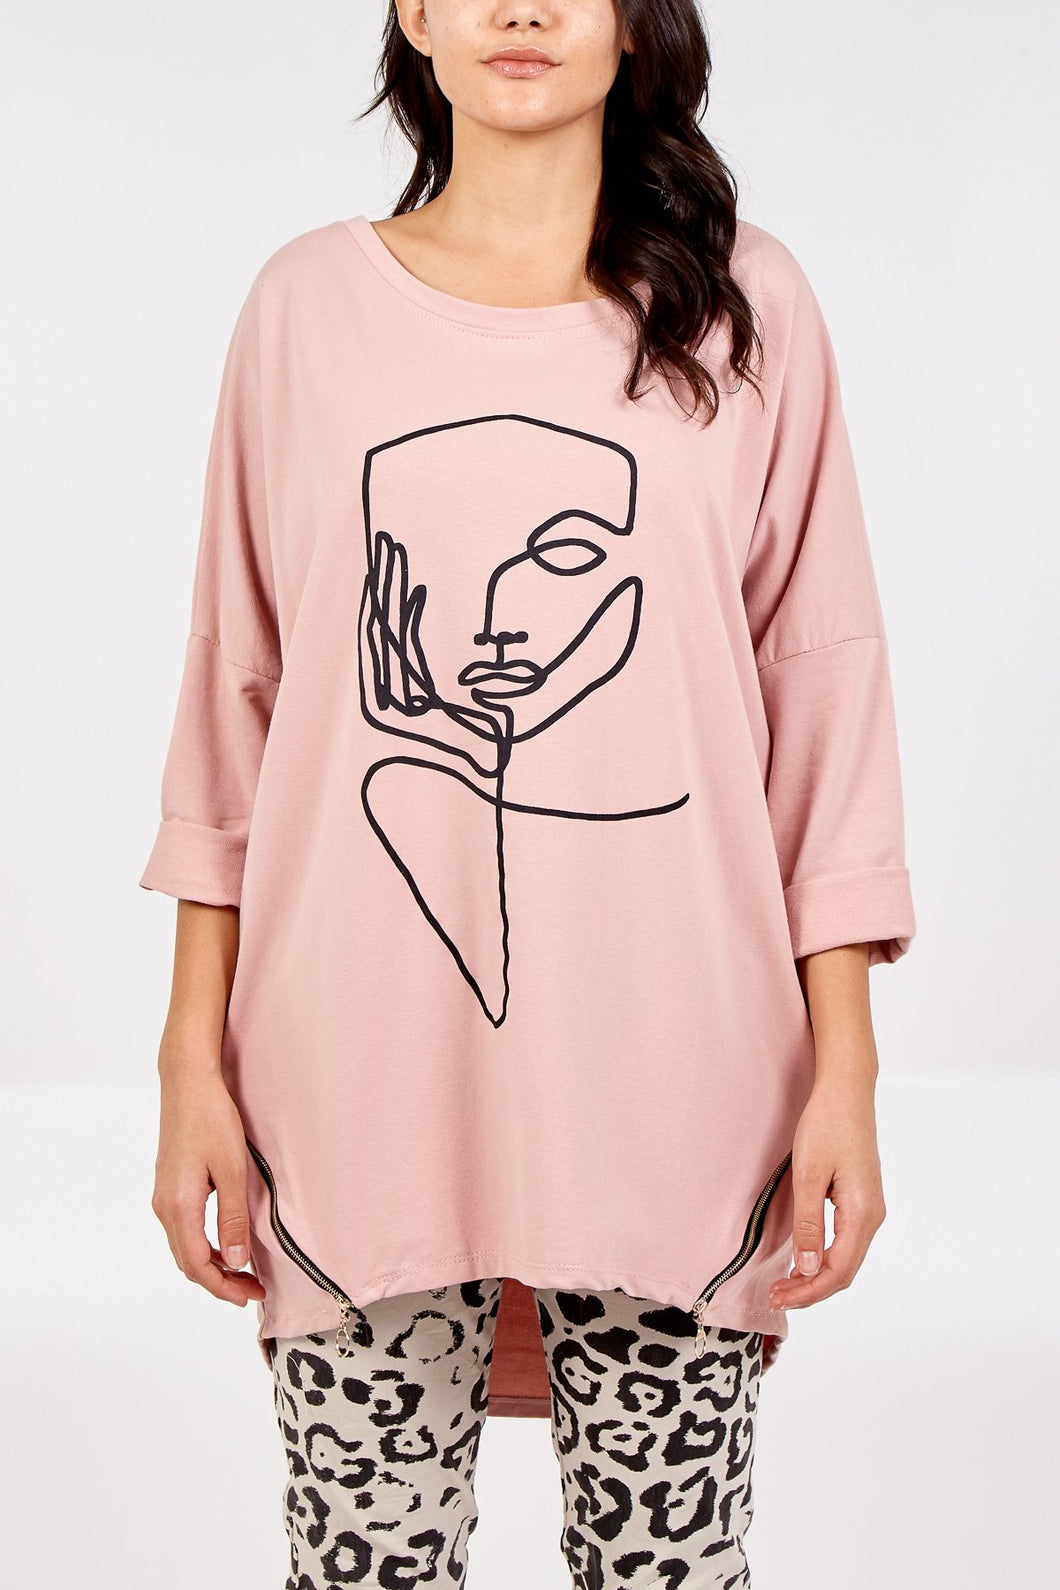 FACE PRINT ZIPPED TOP PINK